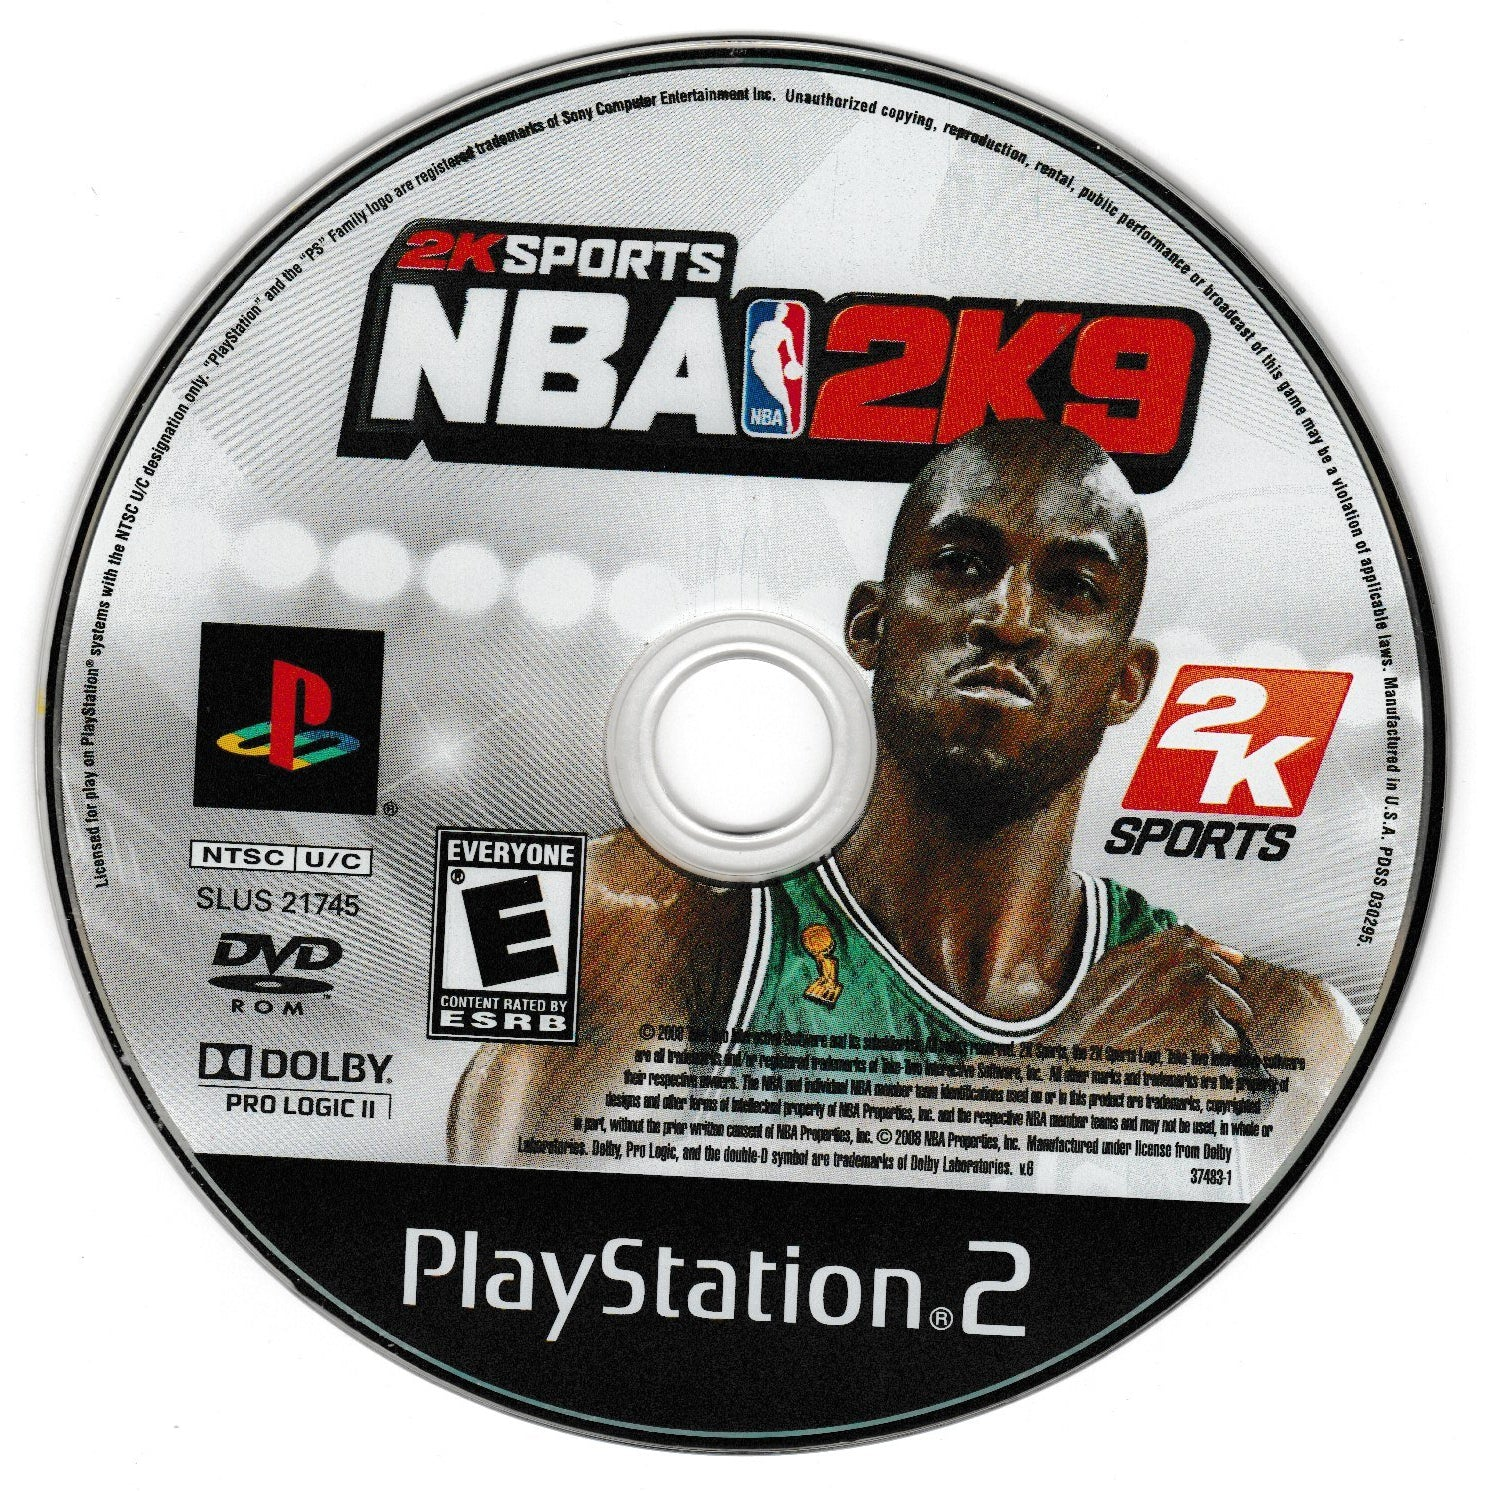 NBA 2K9 - PlayStation 2 (PS2) Game Complete - YourGamingShop.com - Buy, Sell, Trade Video Games Online. 120 Day Warranty. Satisfaction Guaranteed.